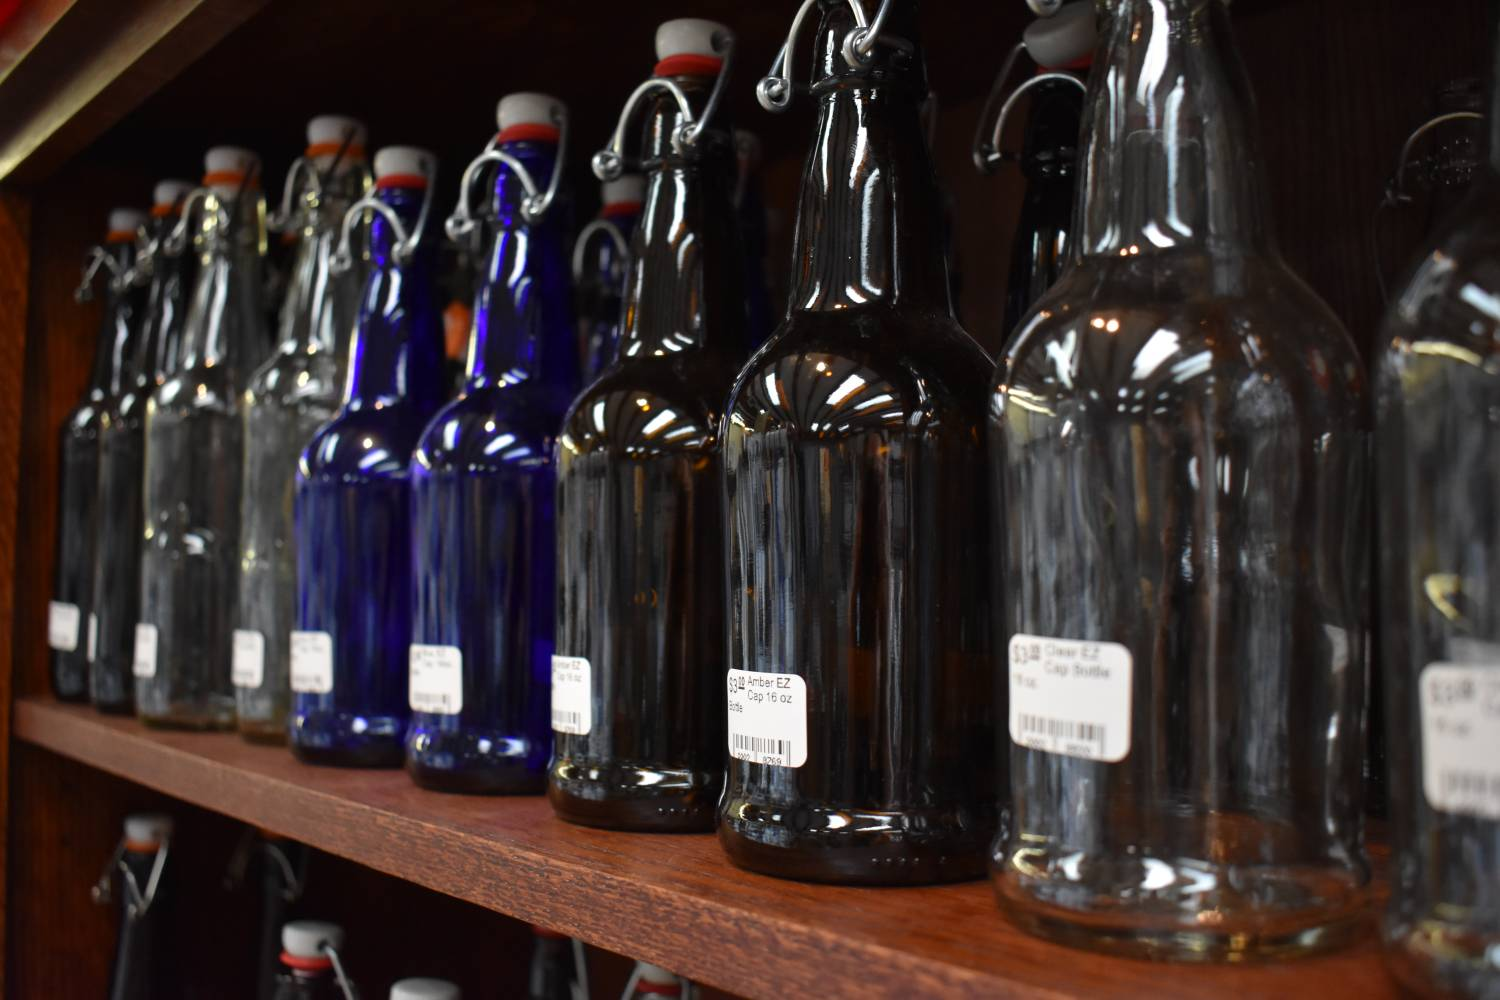 Bottles for beer, wine, kombucha, spirits, and more!!